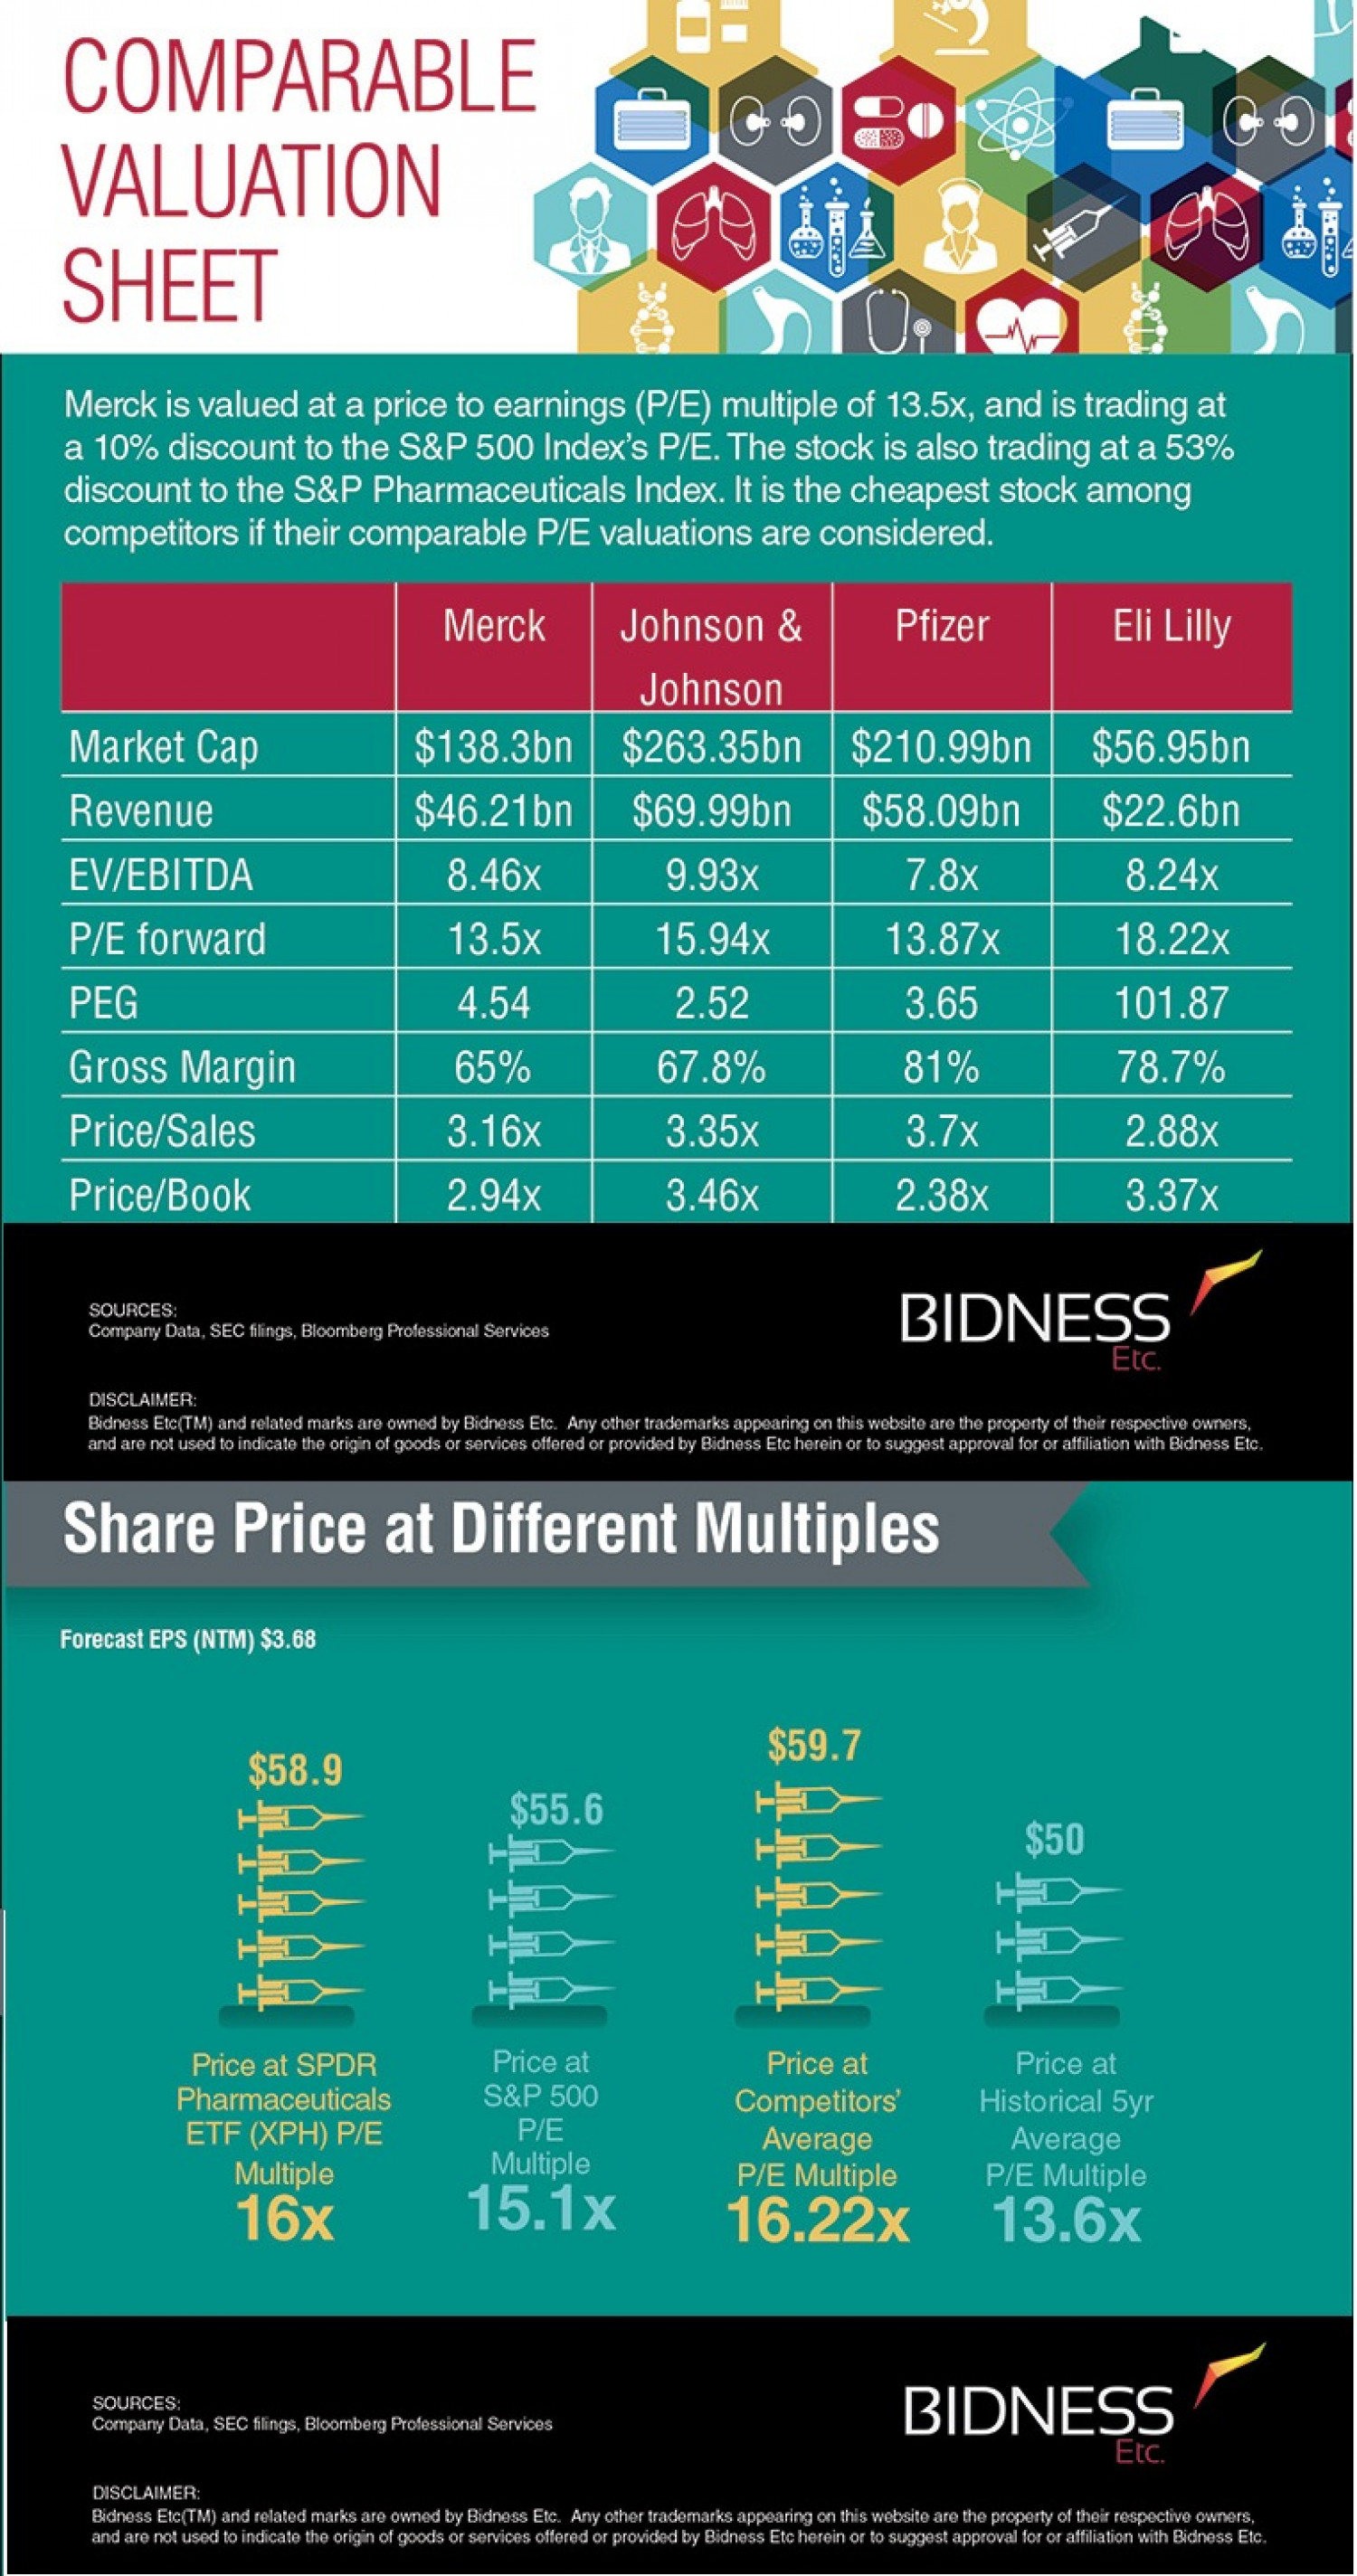 Merck & Co Valuation Sheet Infographic